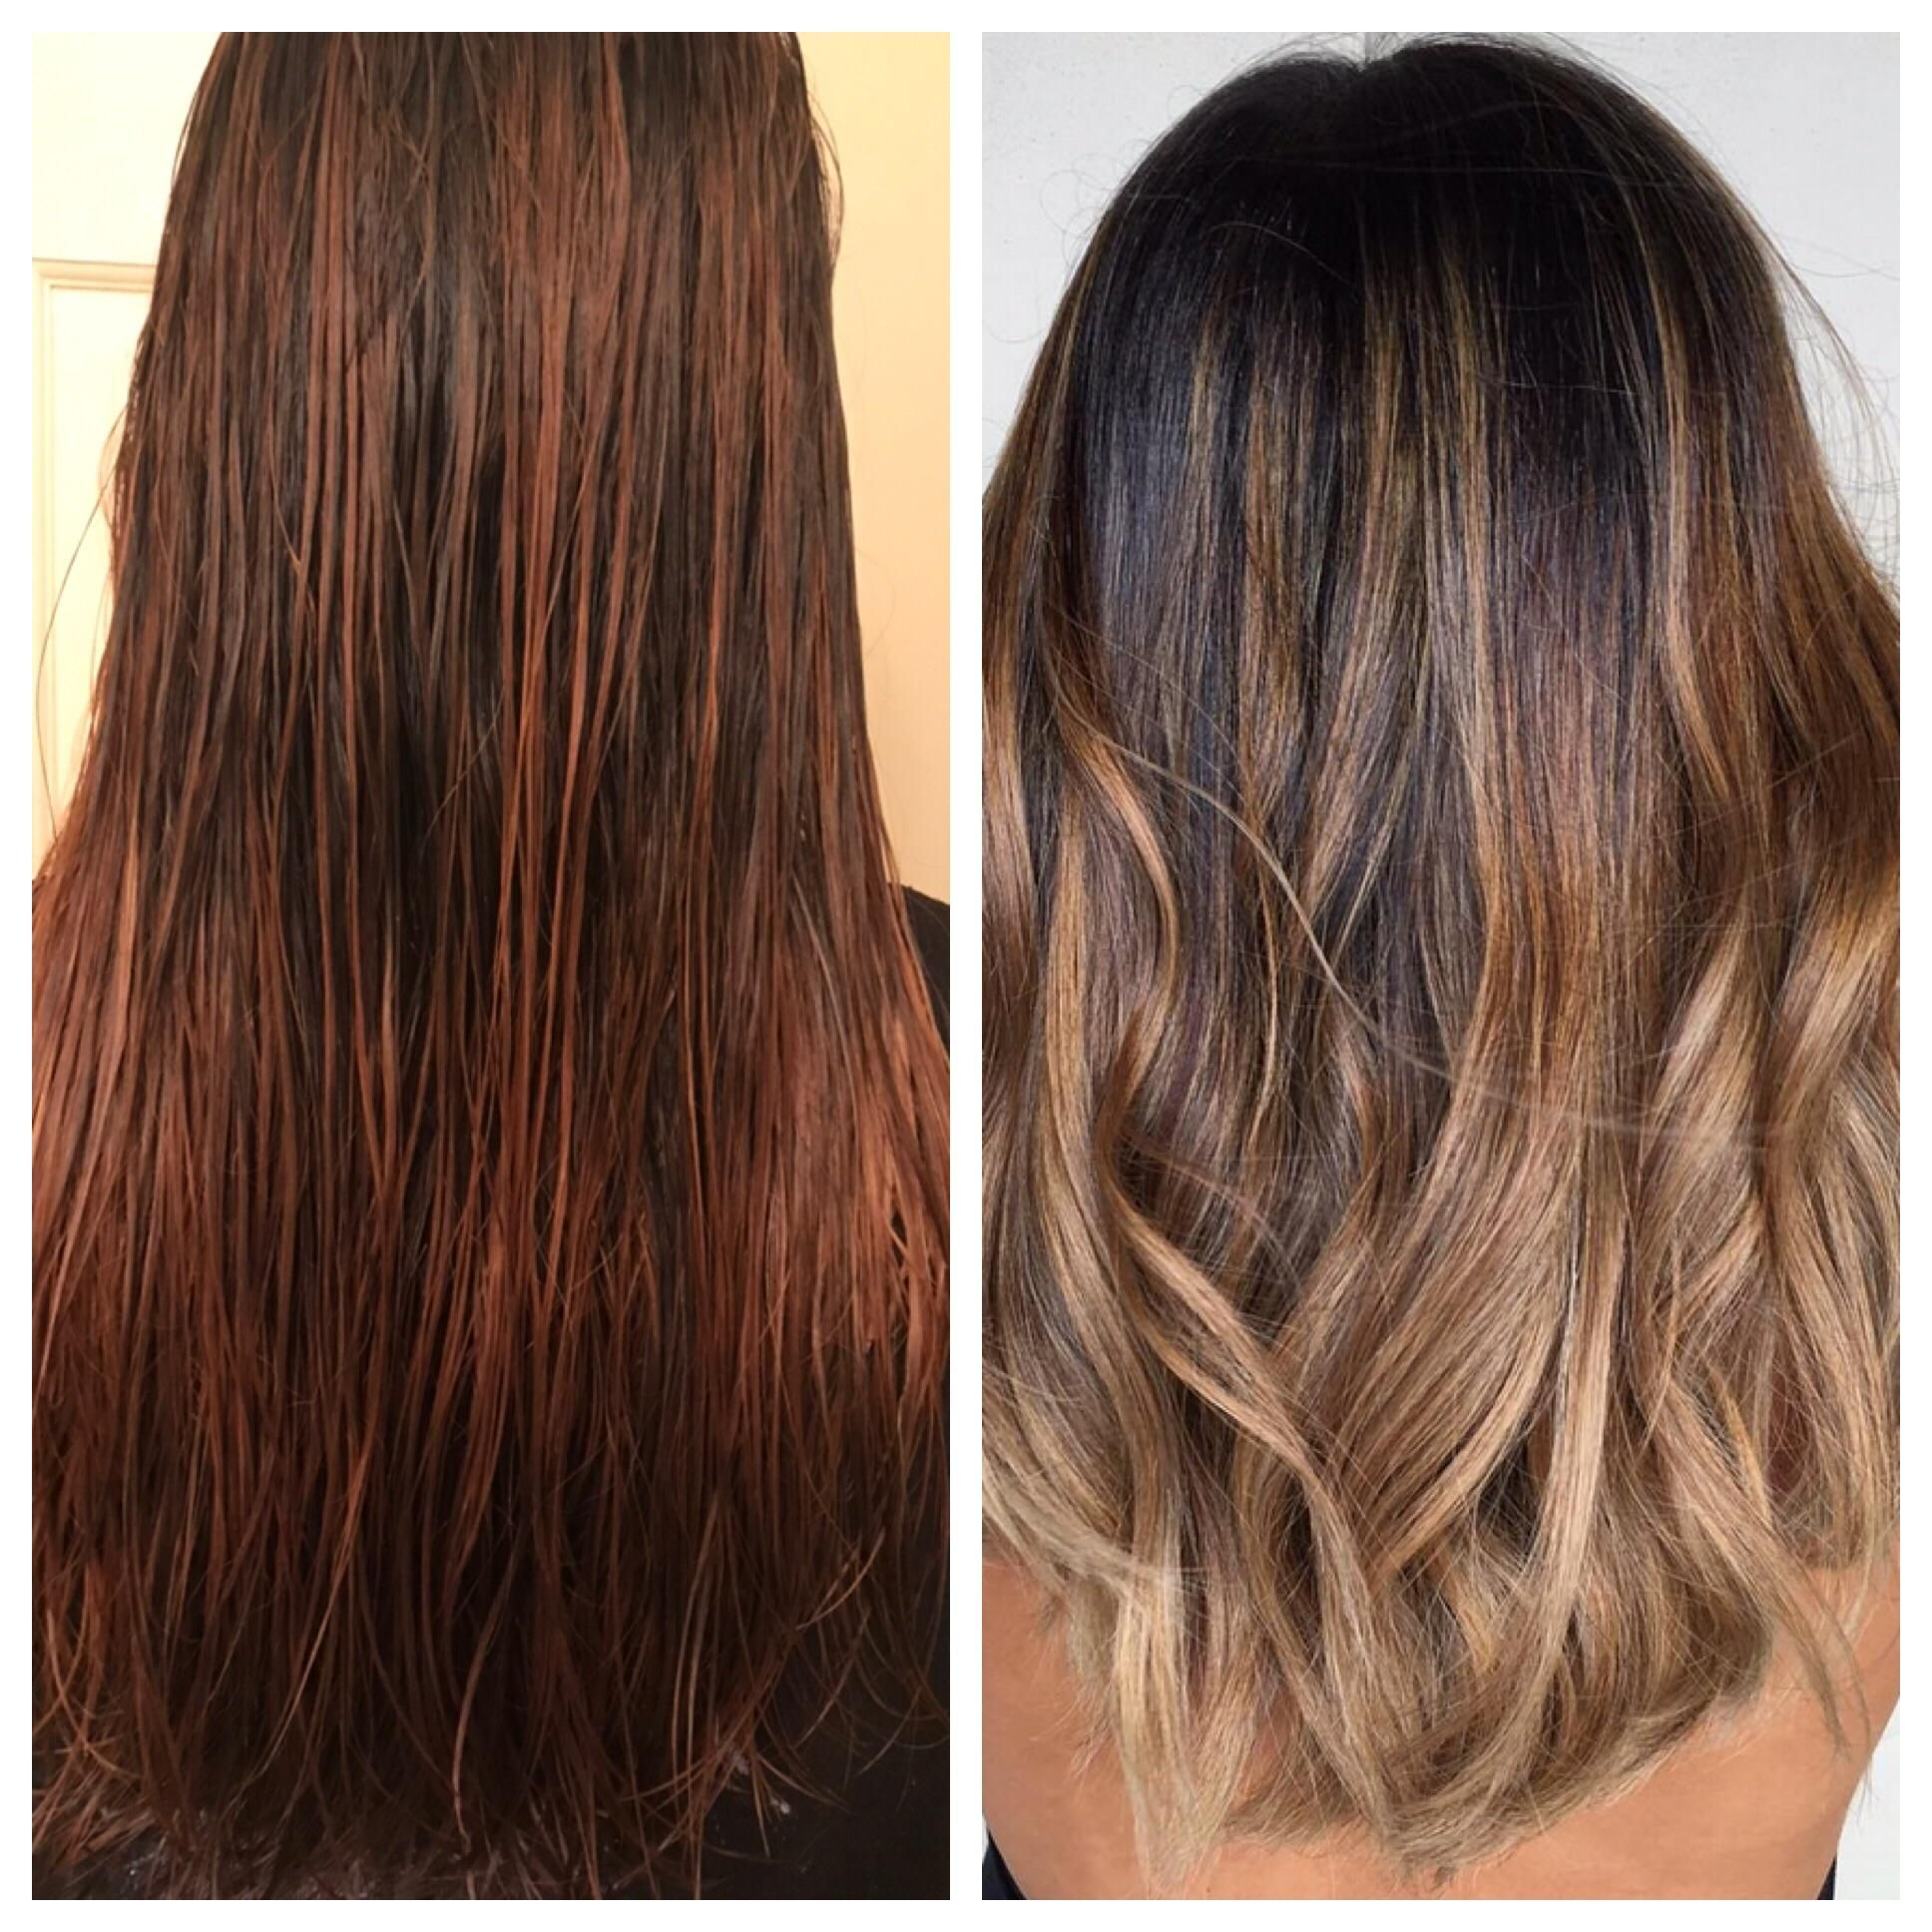 I Need Tips On How To Achieve The Hair Color On The Right Thats Me On The Left After Bleaching My Hair Then Applyin Hair Color Diy Highlights Hair Wella Toner